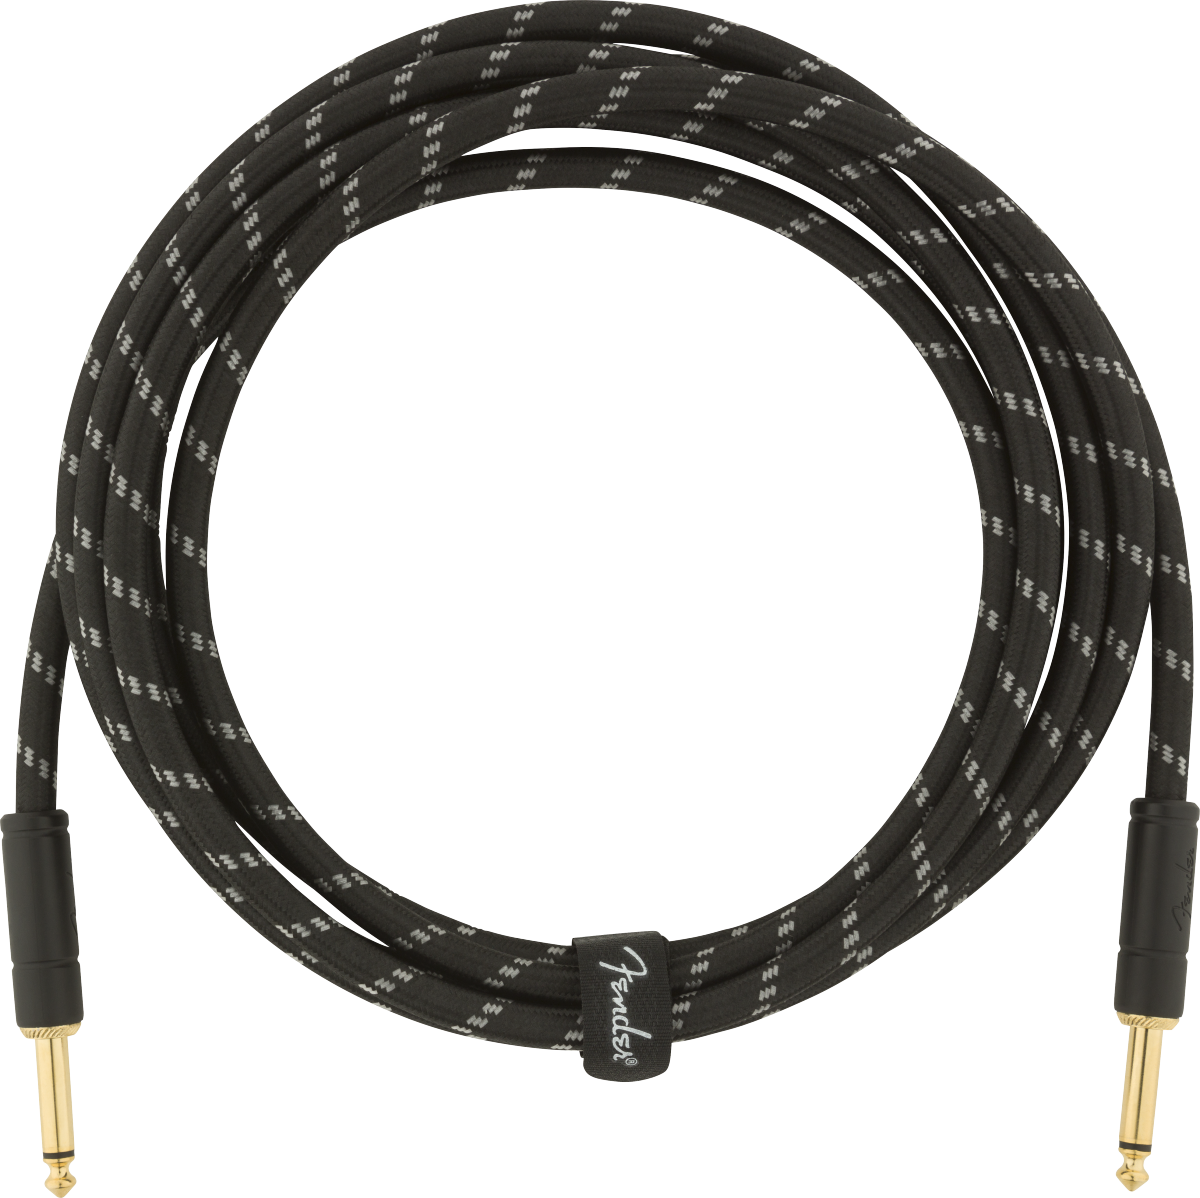 Fender Deluxe Series Instrument Cable Straight/Straight 10' - Black Tweed